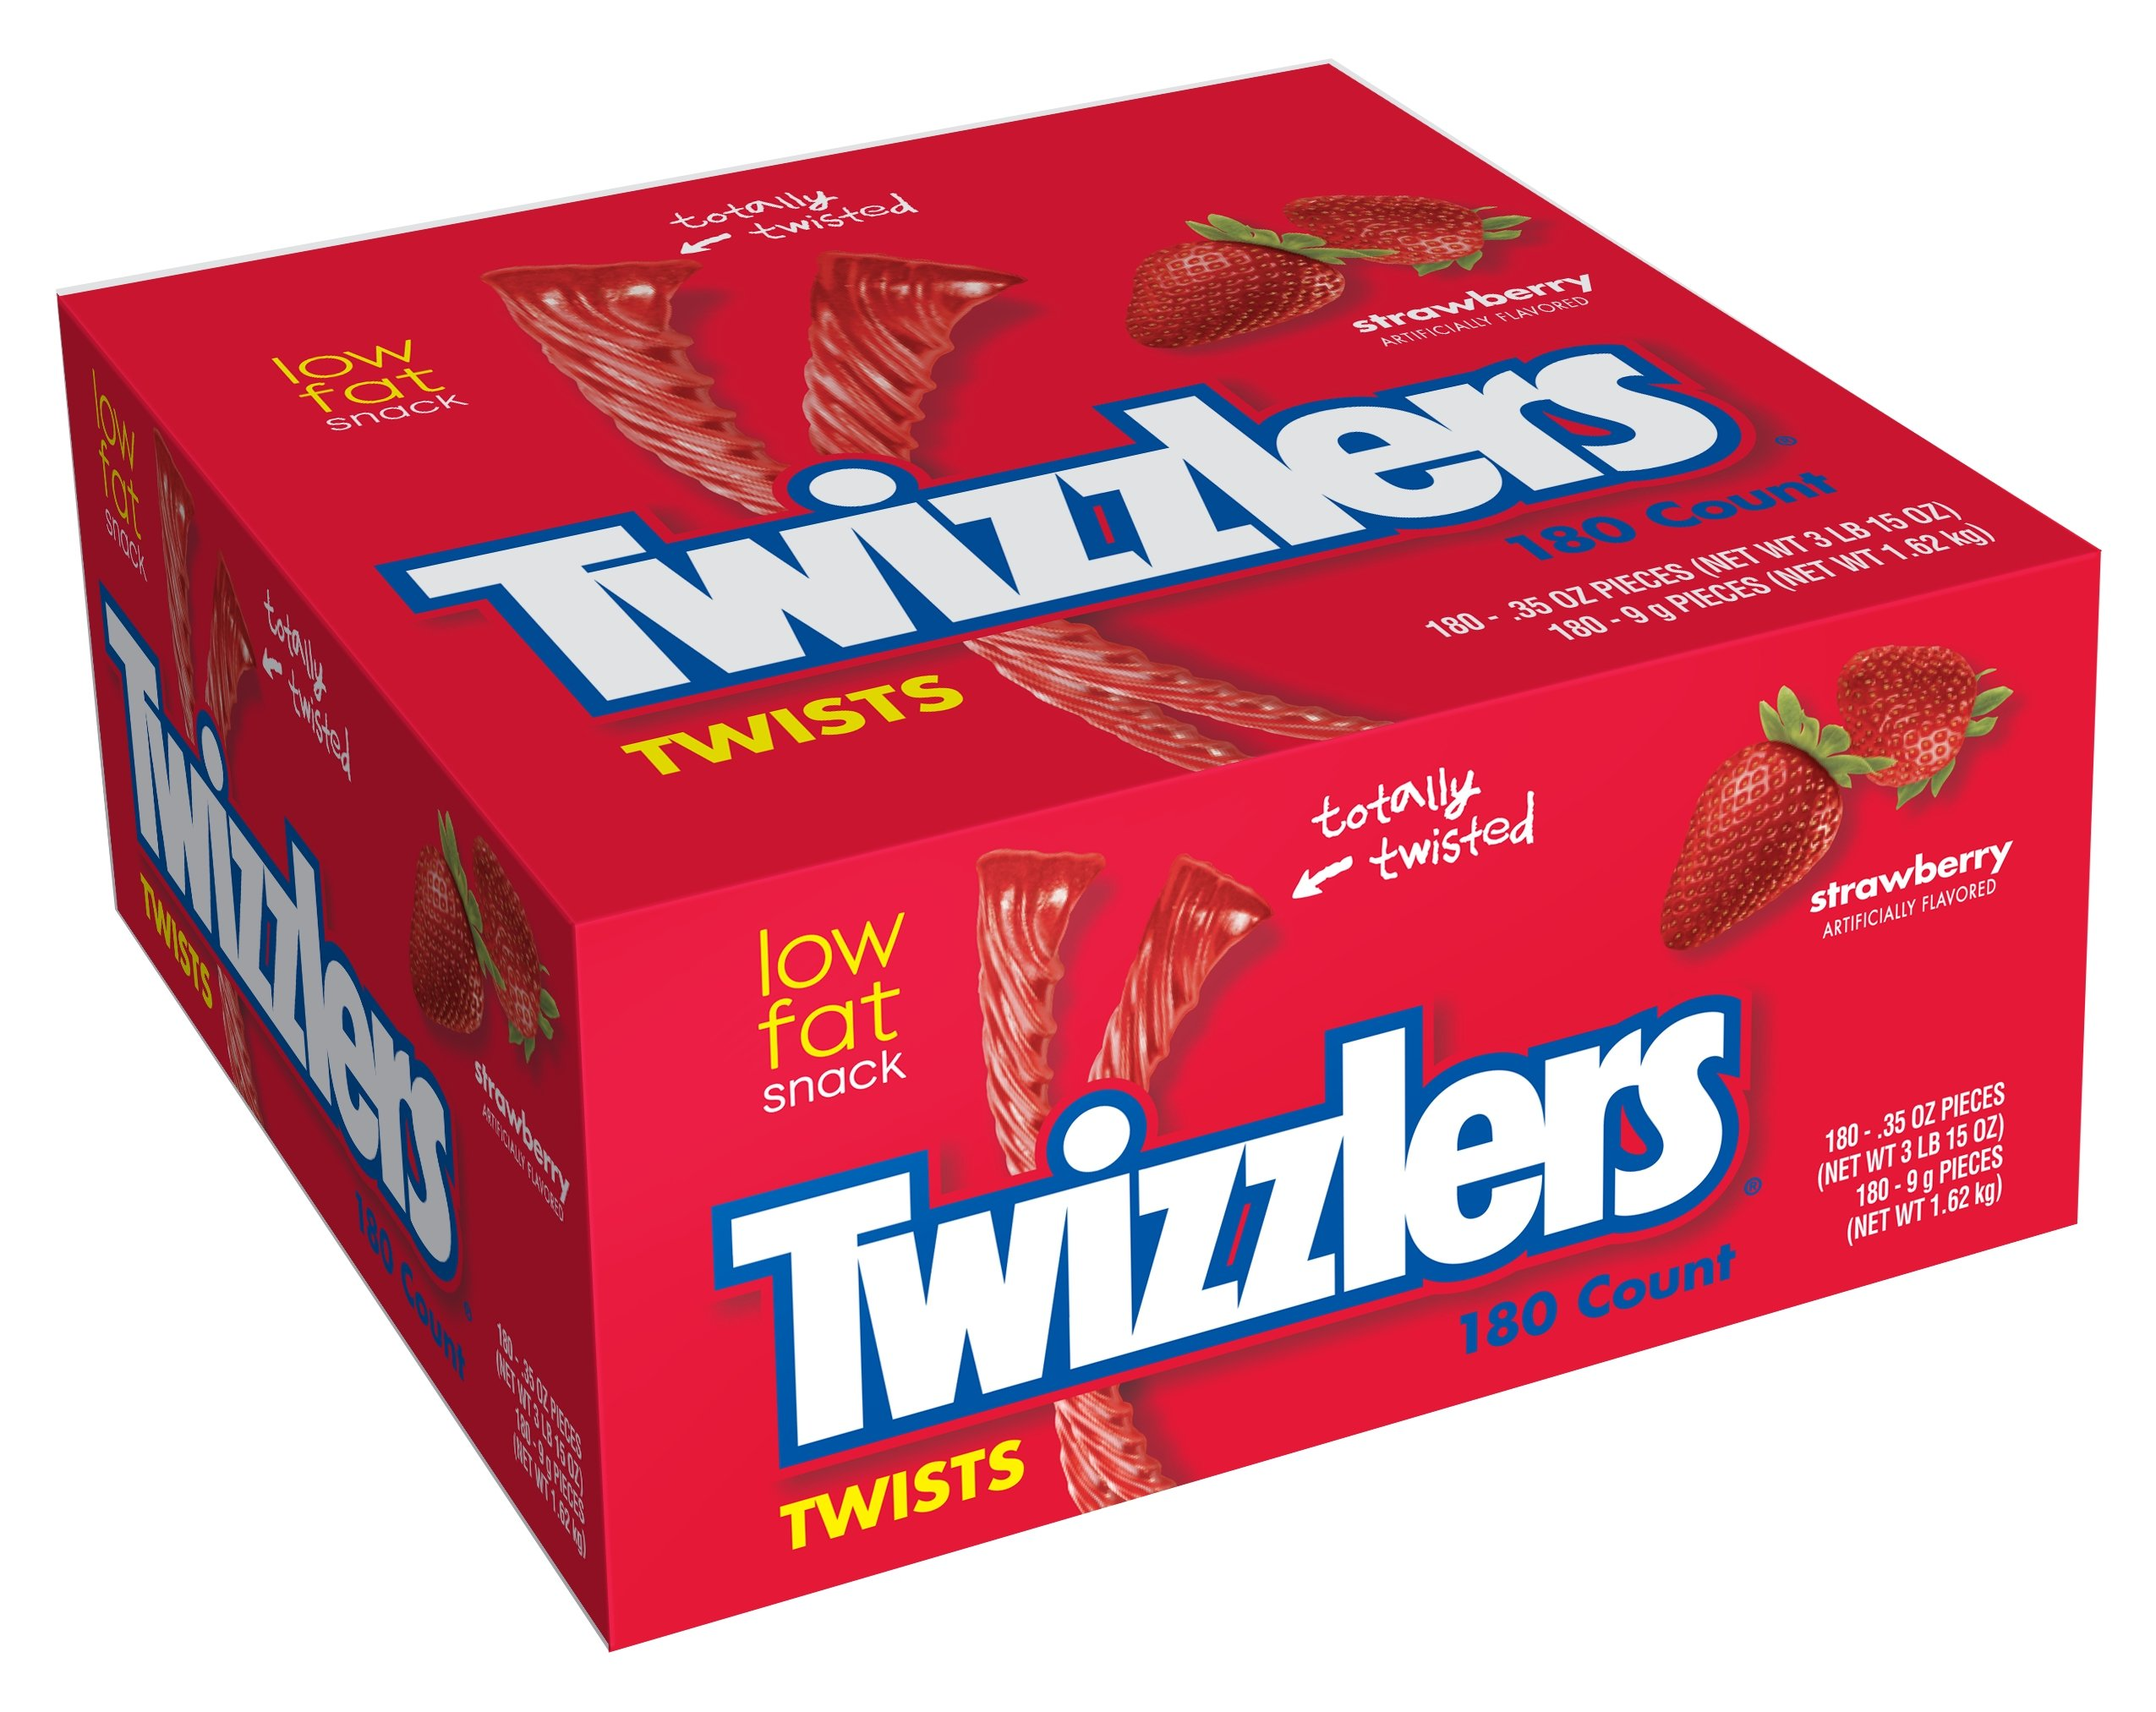 TWIZZLERS Licorice Candy, Strawberry, 180 Count (Pack of 2)